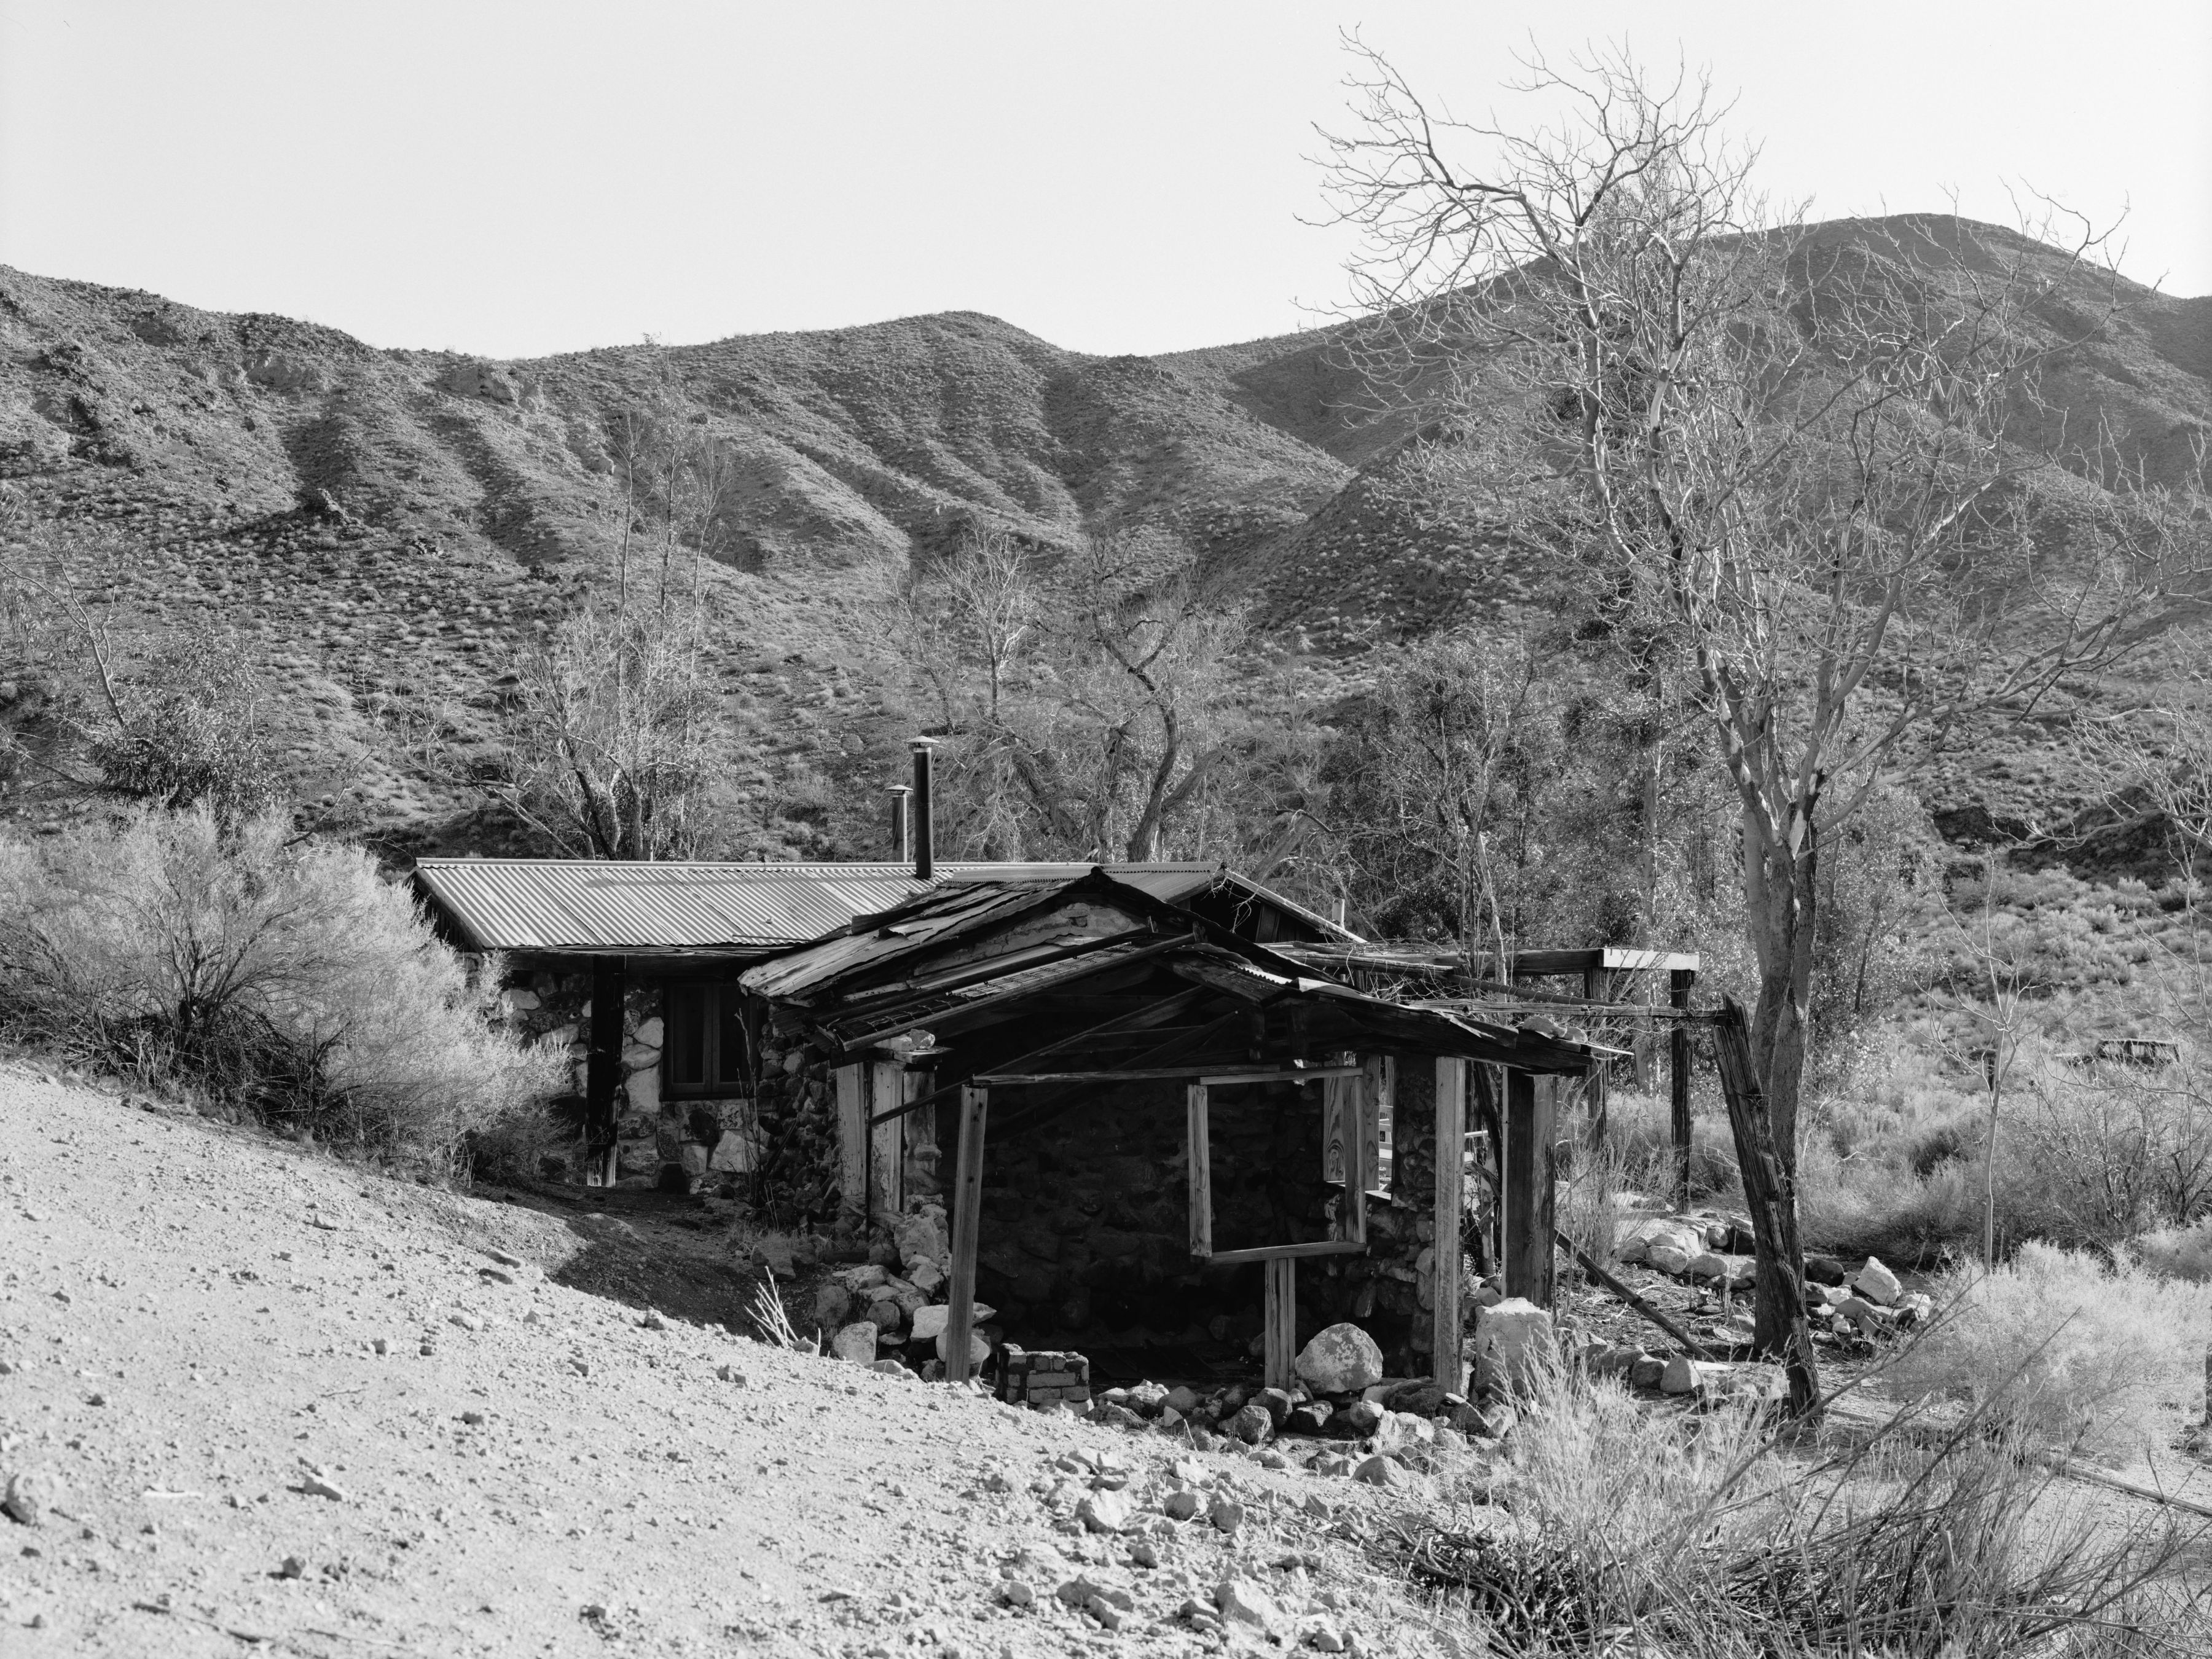 Joachim Koester, Barker Ranch, 2006, Suite of four Selenium toned silver gelatin prints, 20 x 24 inches